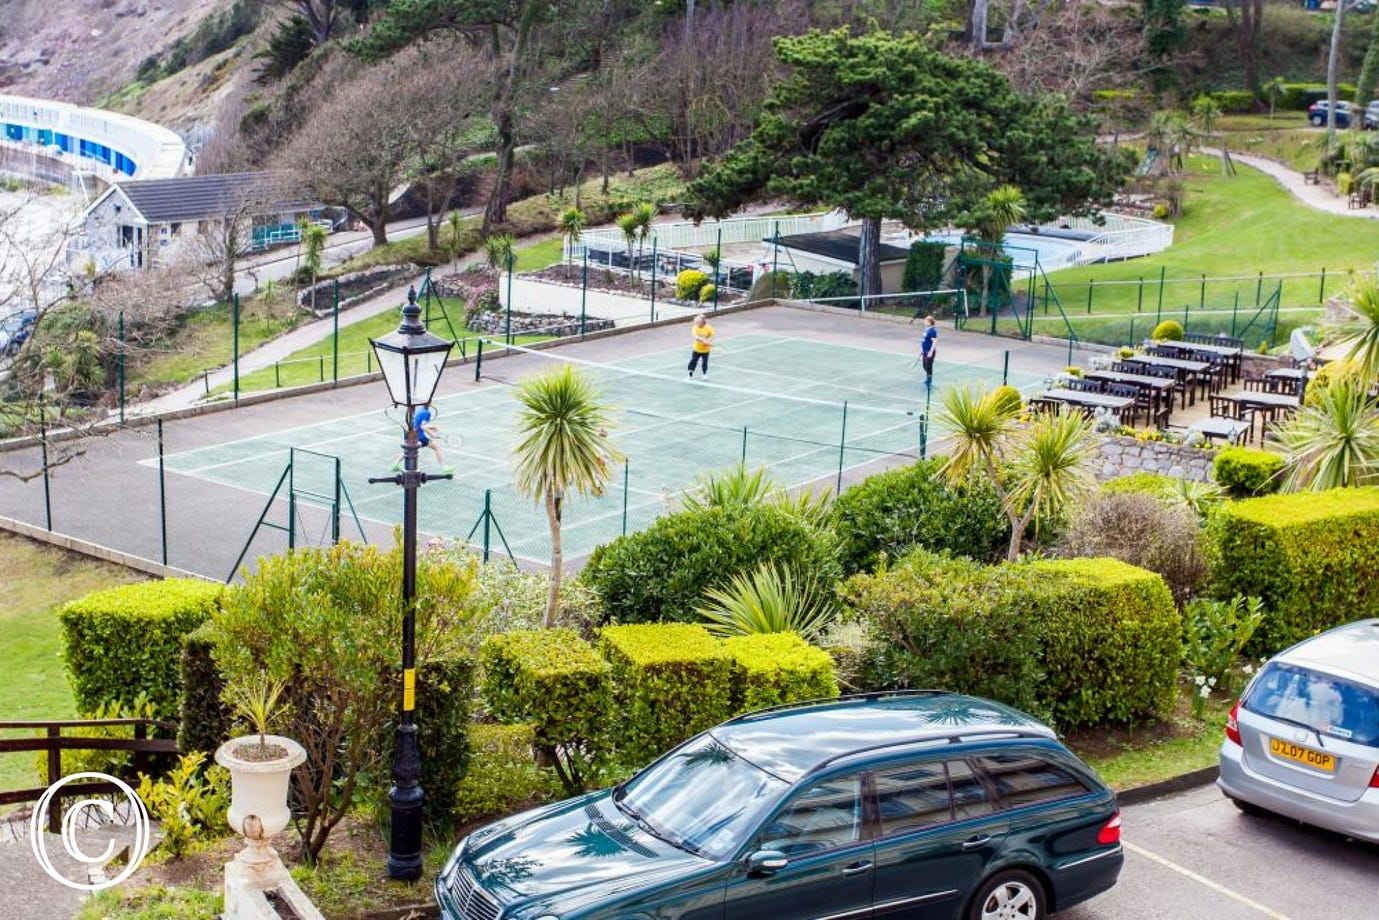 Outdoor Tennis Court Available for the use of Guests (Additional Charges Apply)